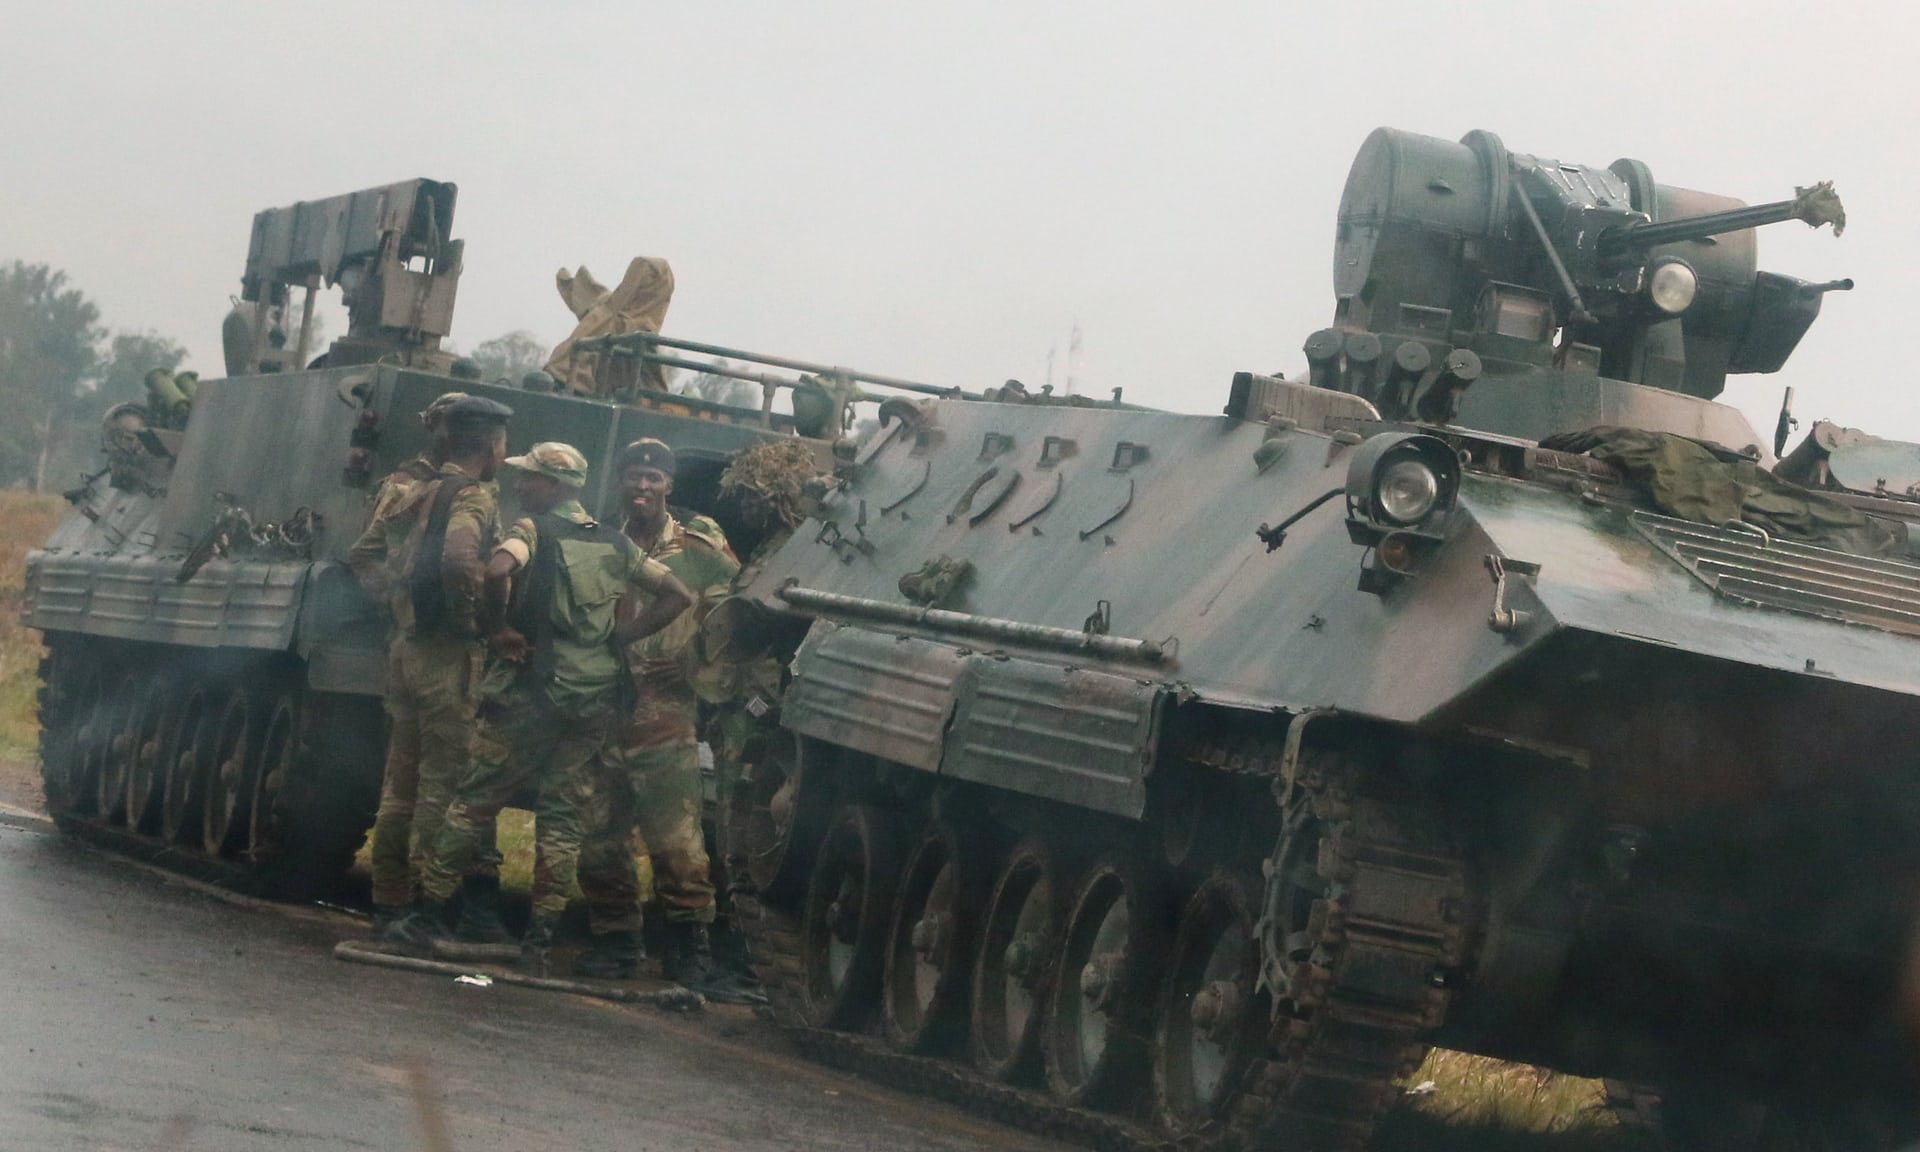 TENSION RISE IN ZIMBABWE AS MILITARY DRIVES THROUGH OUTSKIRTS OF CAPITAL